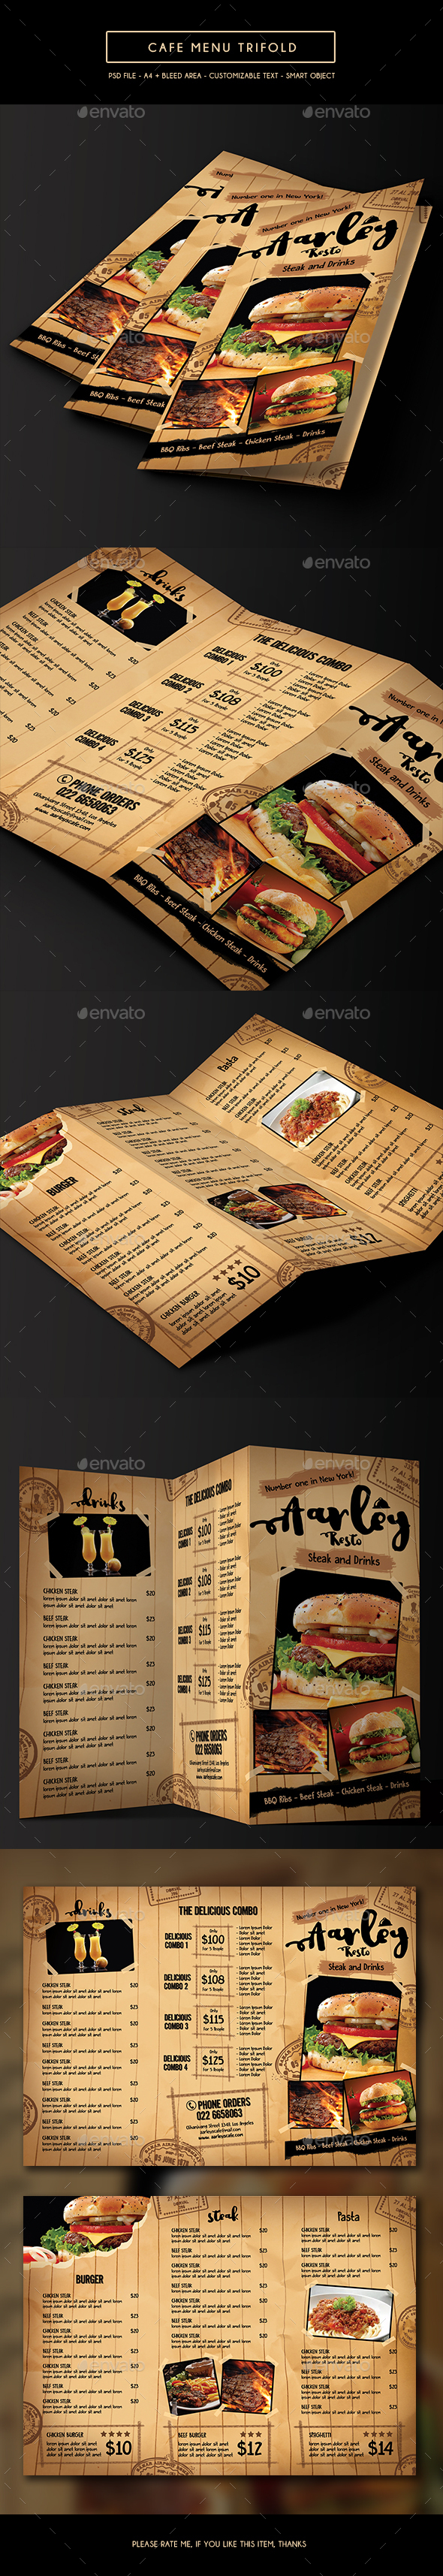 Cafe Menu Trifold - Food Menus Print Templates